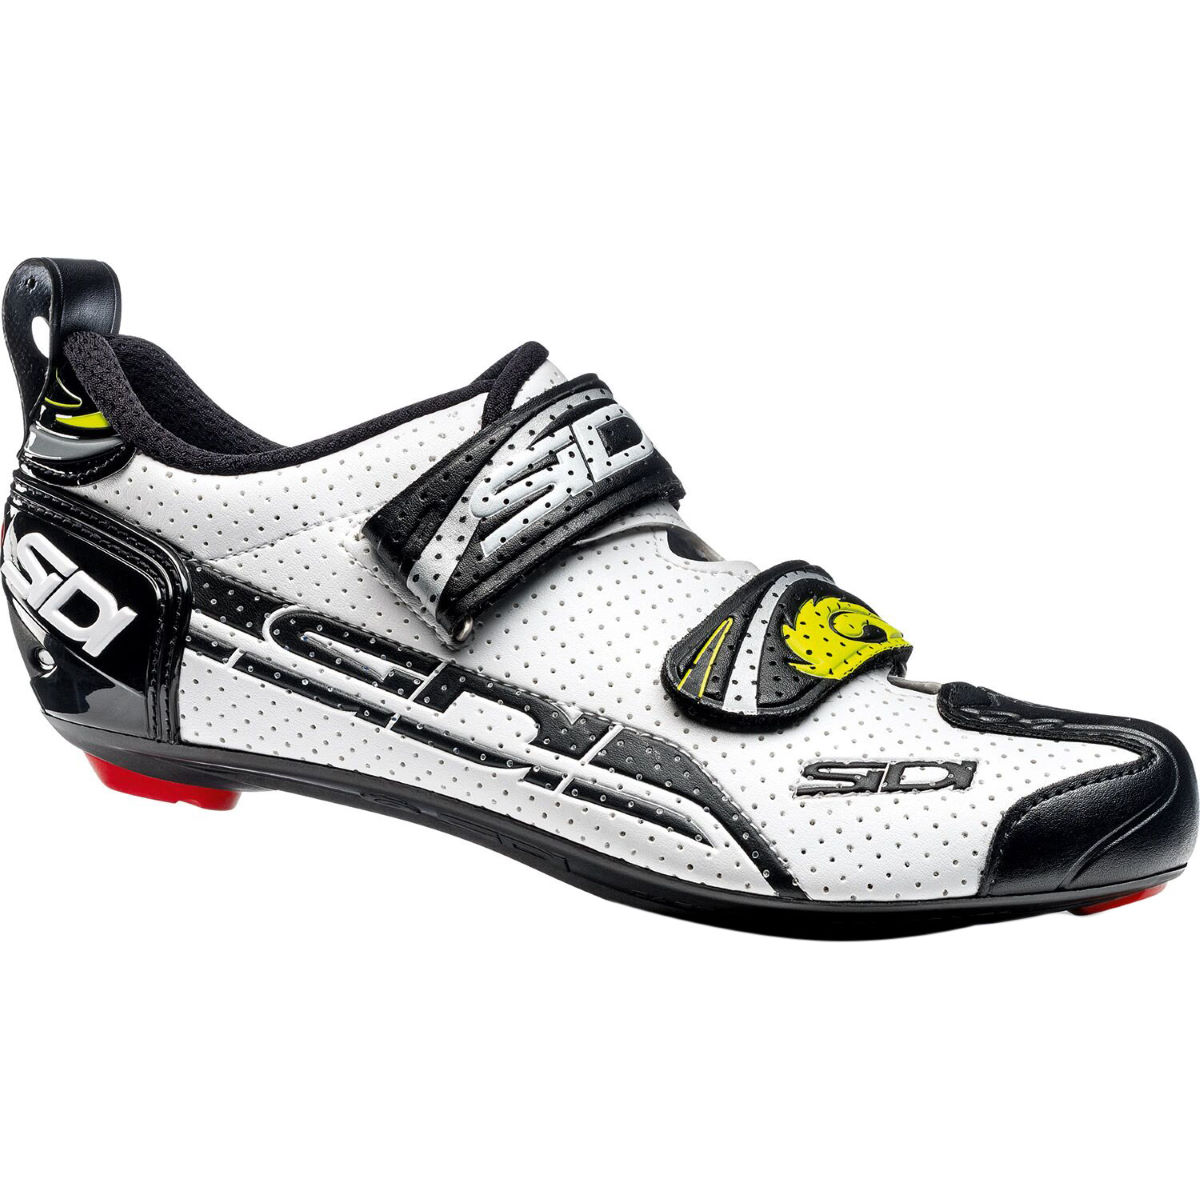 Sapatilhas do triathlon de Sidi T-4 Air Carbon - sapatilhas do Triathlon